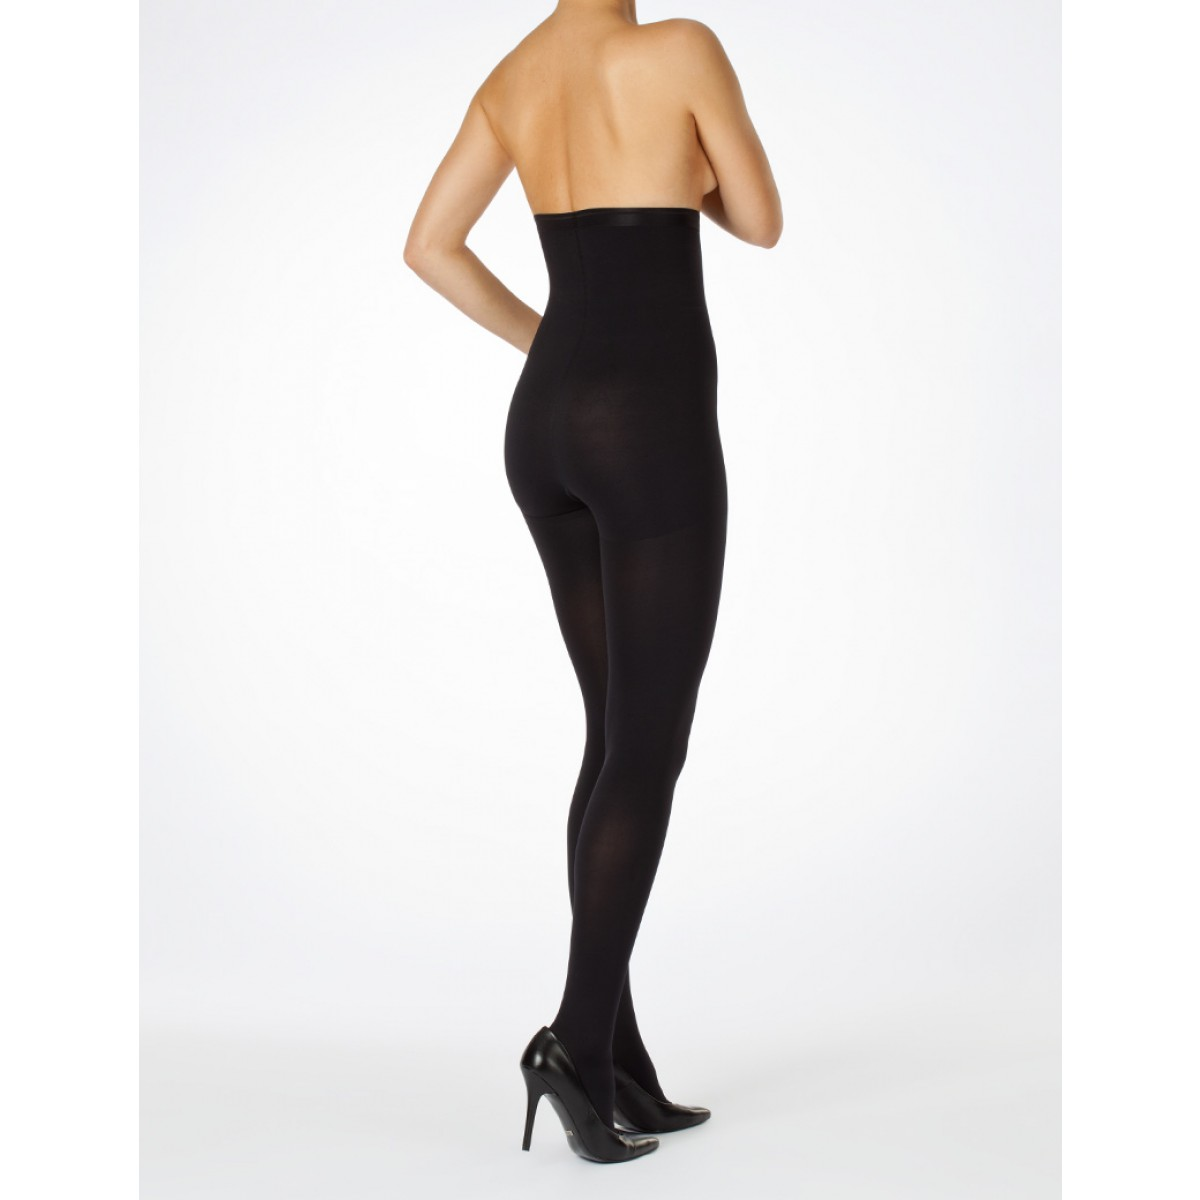 ITEM m6 Shapewear Tights Opaque Black-35